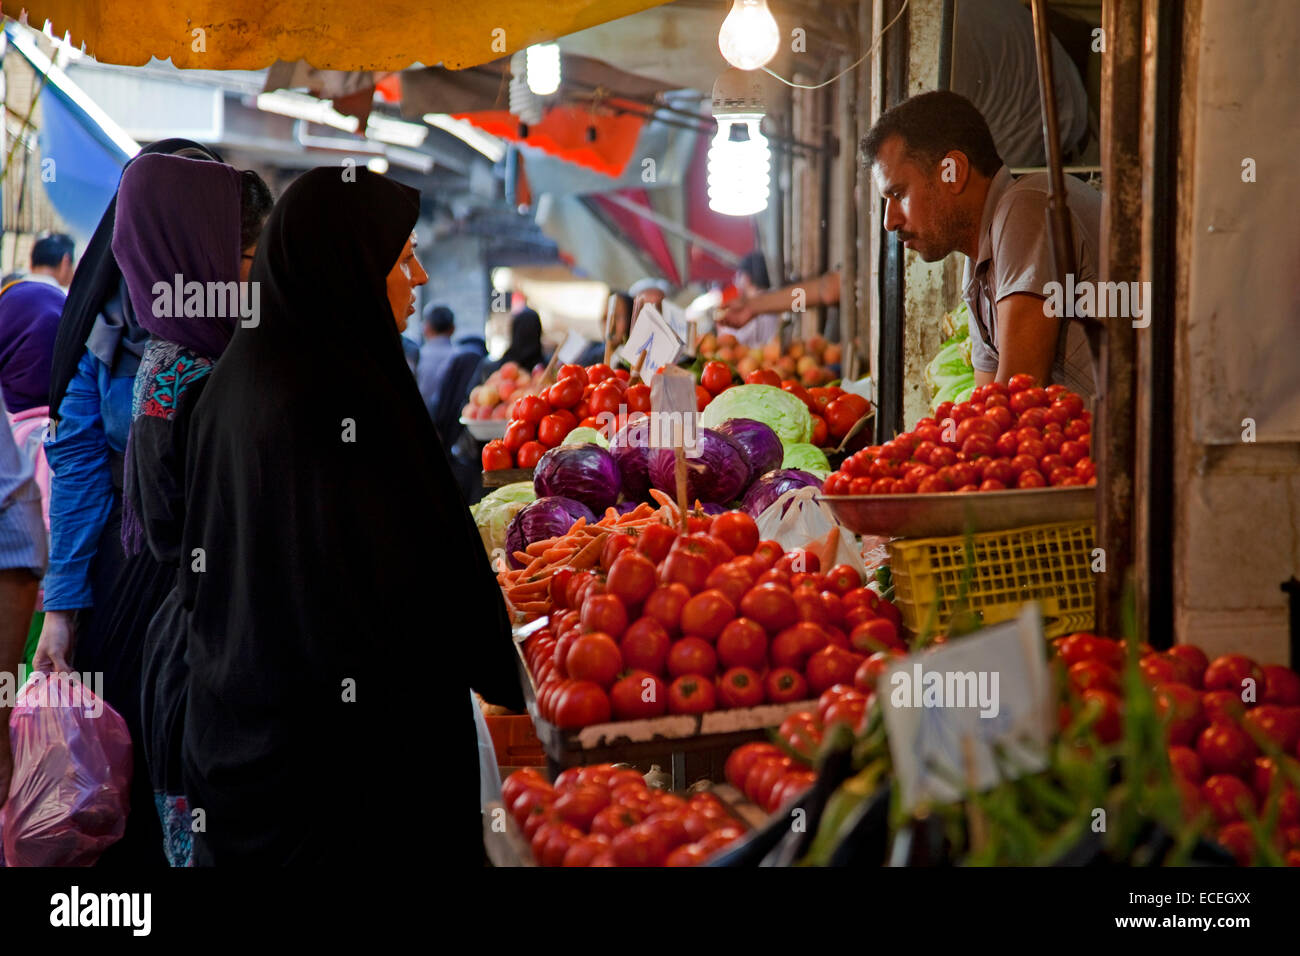 Iranian Muslim women wearing scarves buying vegetables and red tomatoes at food market booth in Gorgan / Gurgan, - Stock Image